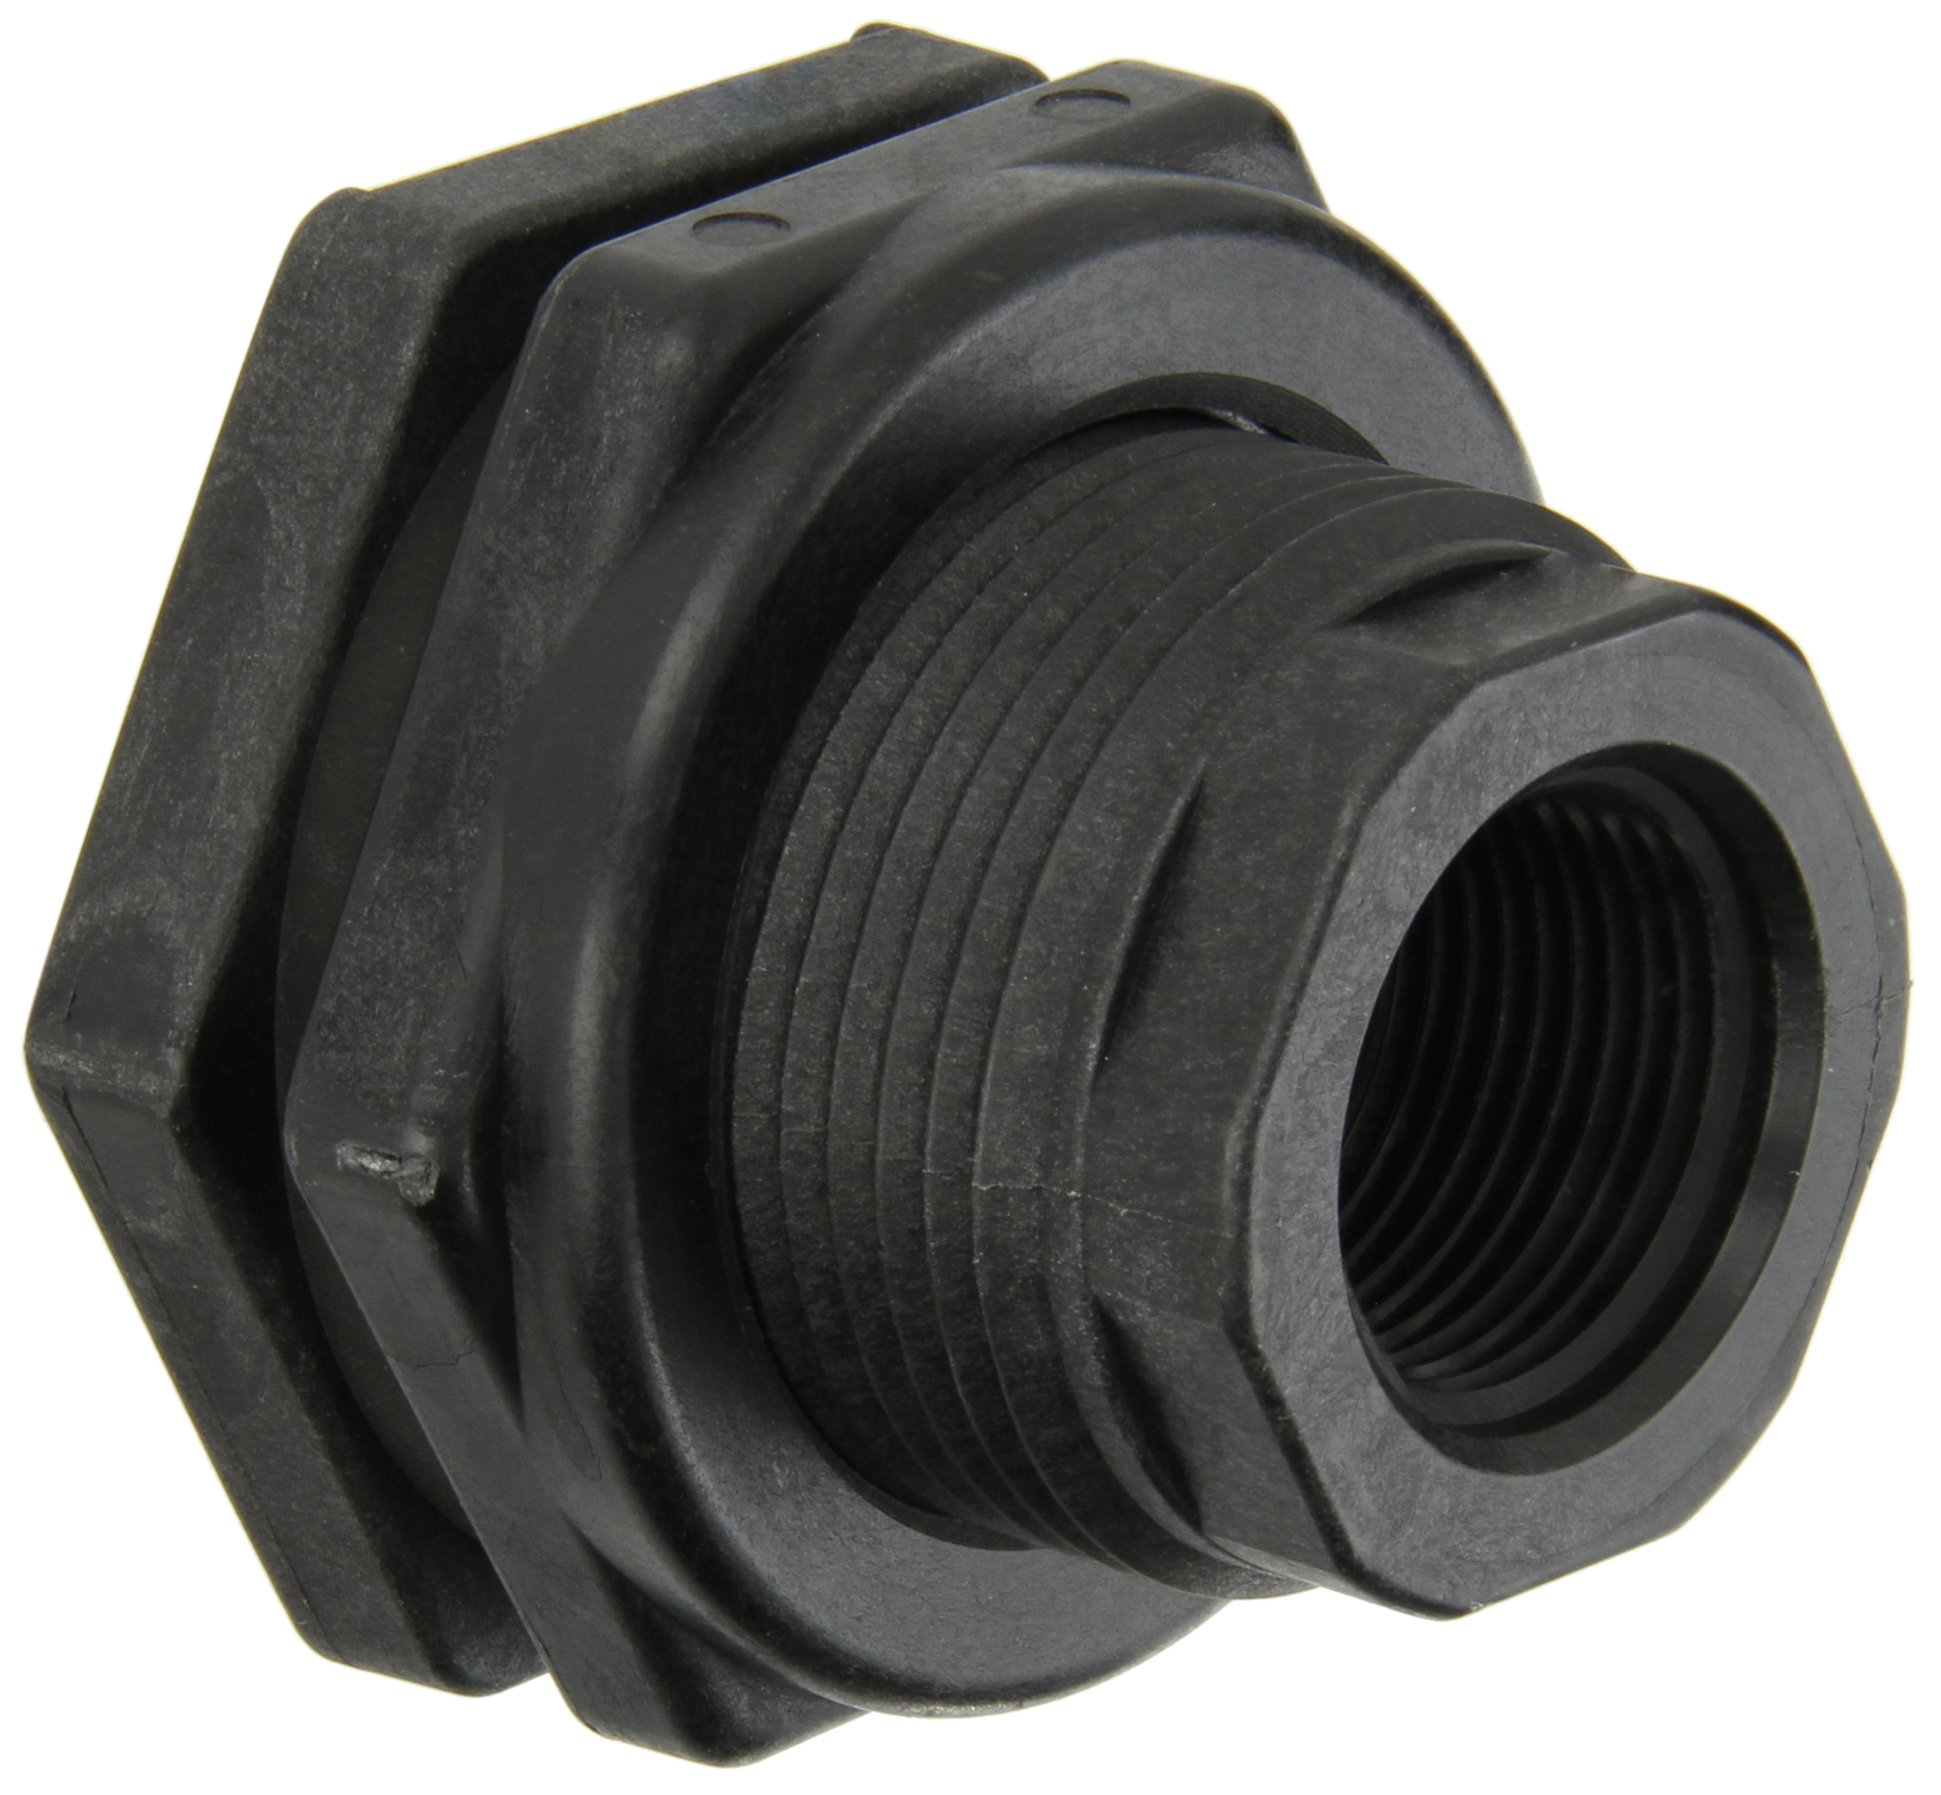 3//4 Male Adapter x GHT Male Banjo GHMT075F Polypropylene Cam /& Groove Fitting